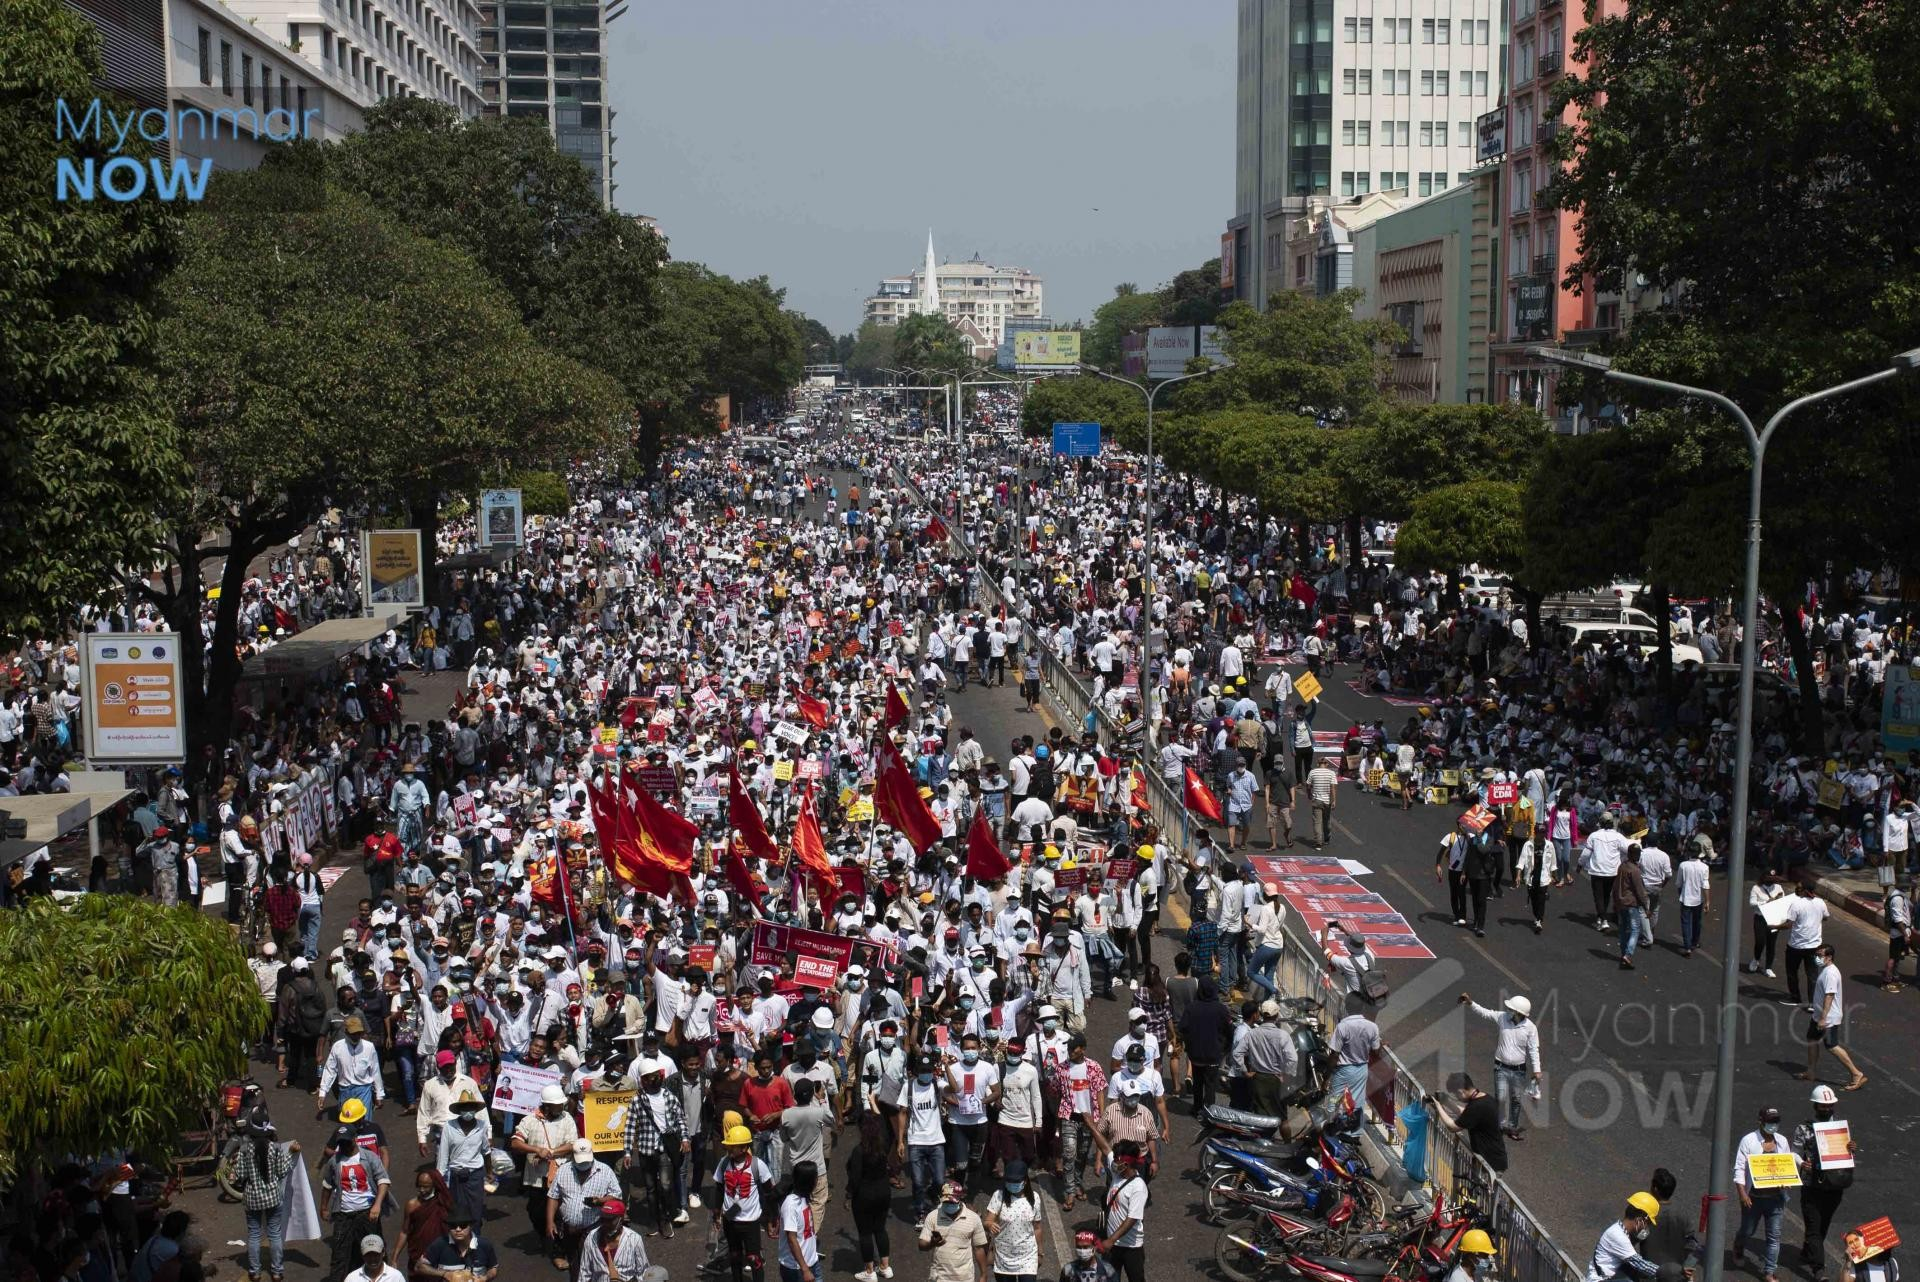 Huge numbers of protesters have turned out around the country to demand an end to military rule